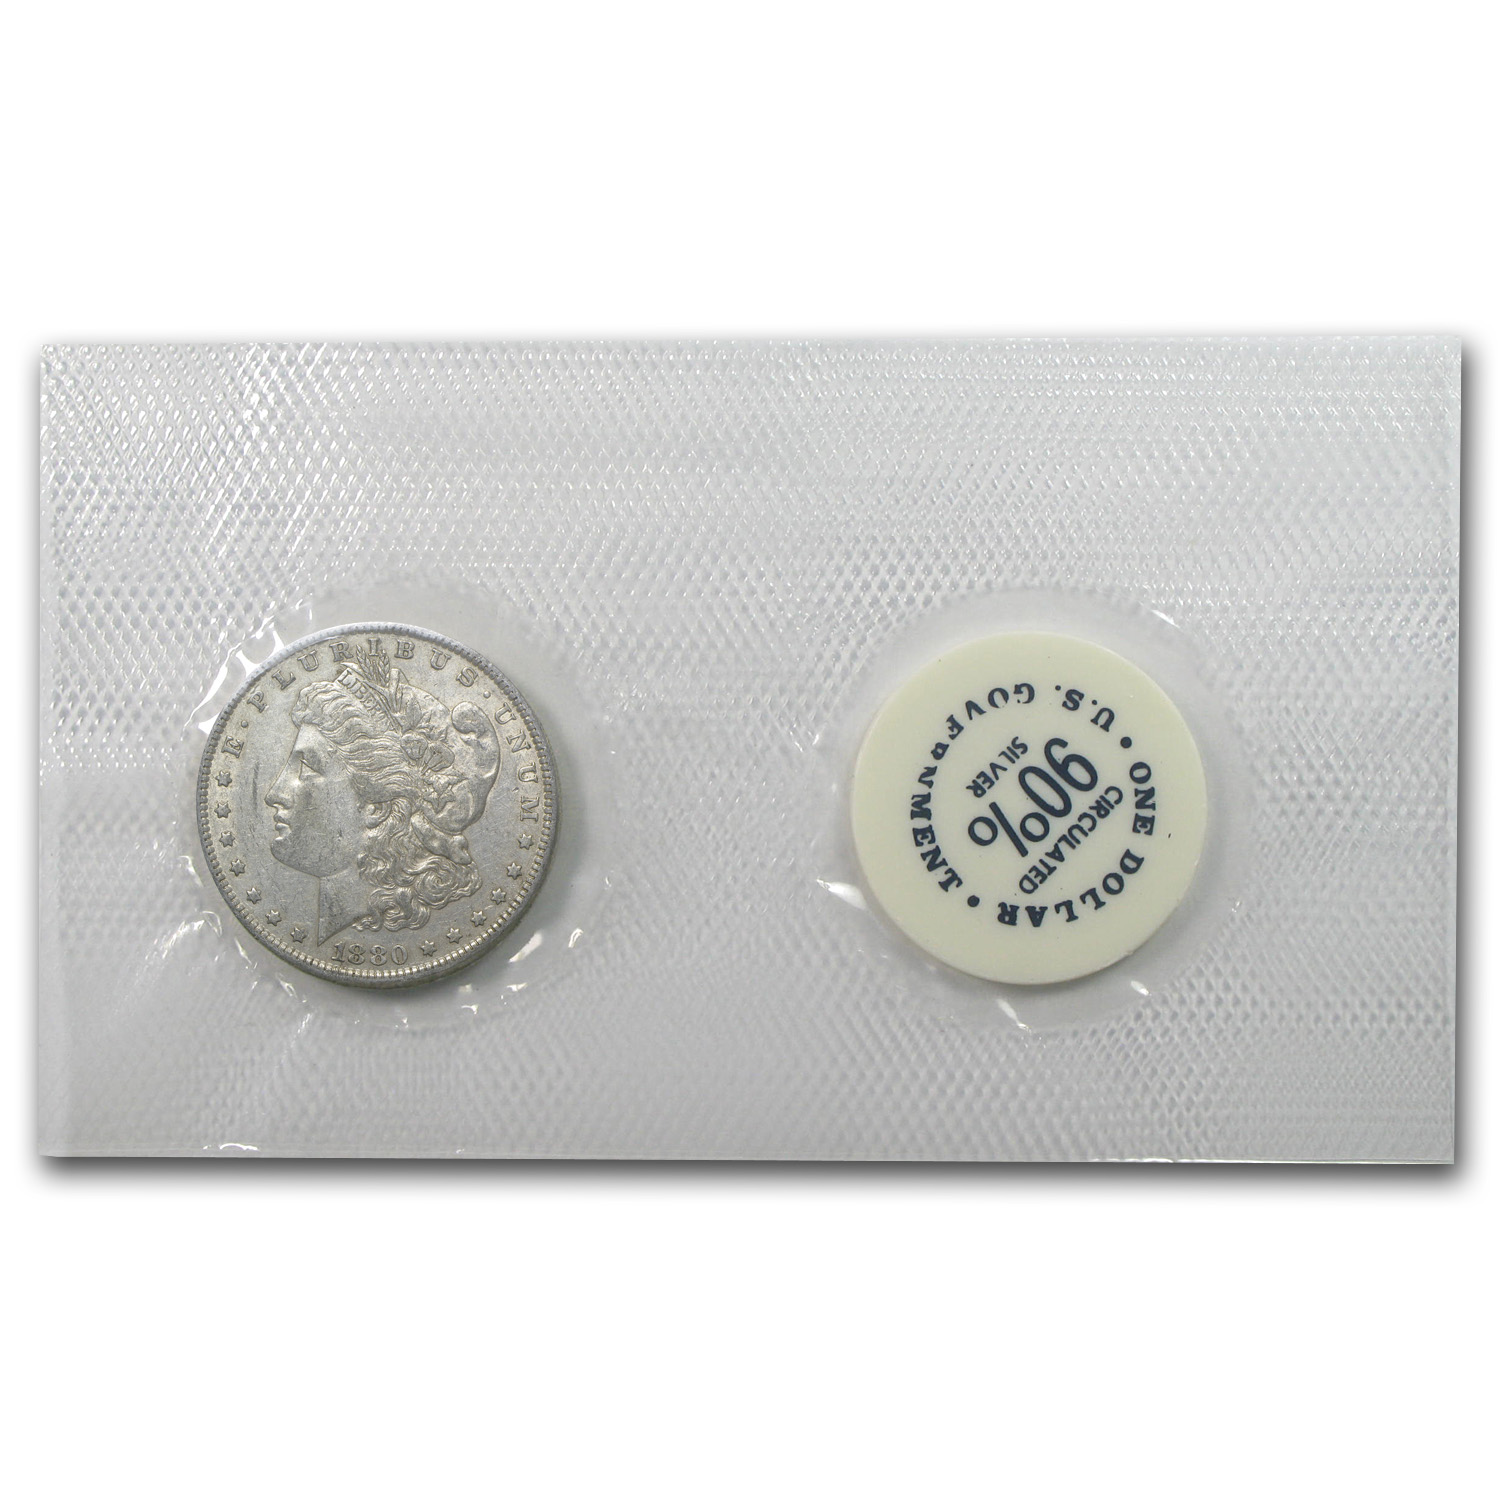 1880-O Morgan Dollar - Extra Fine-45 GSA Soft Pack